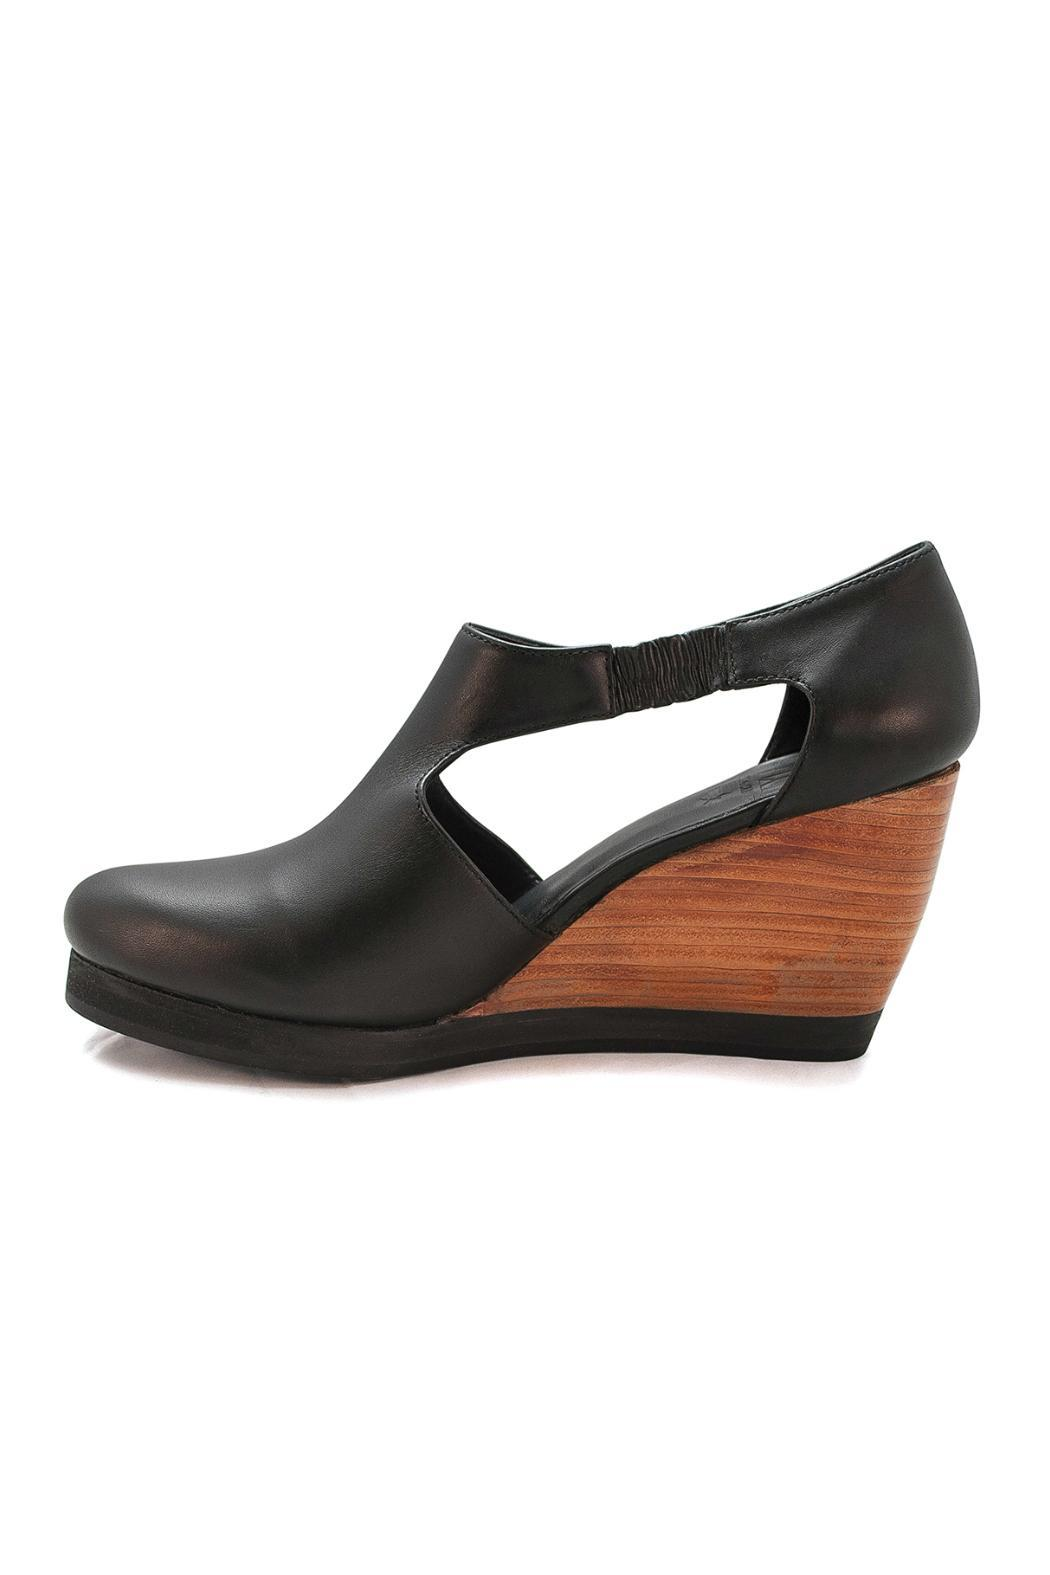 Fortress of Inca Black Leather Wedge - Main Image